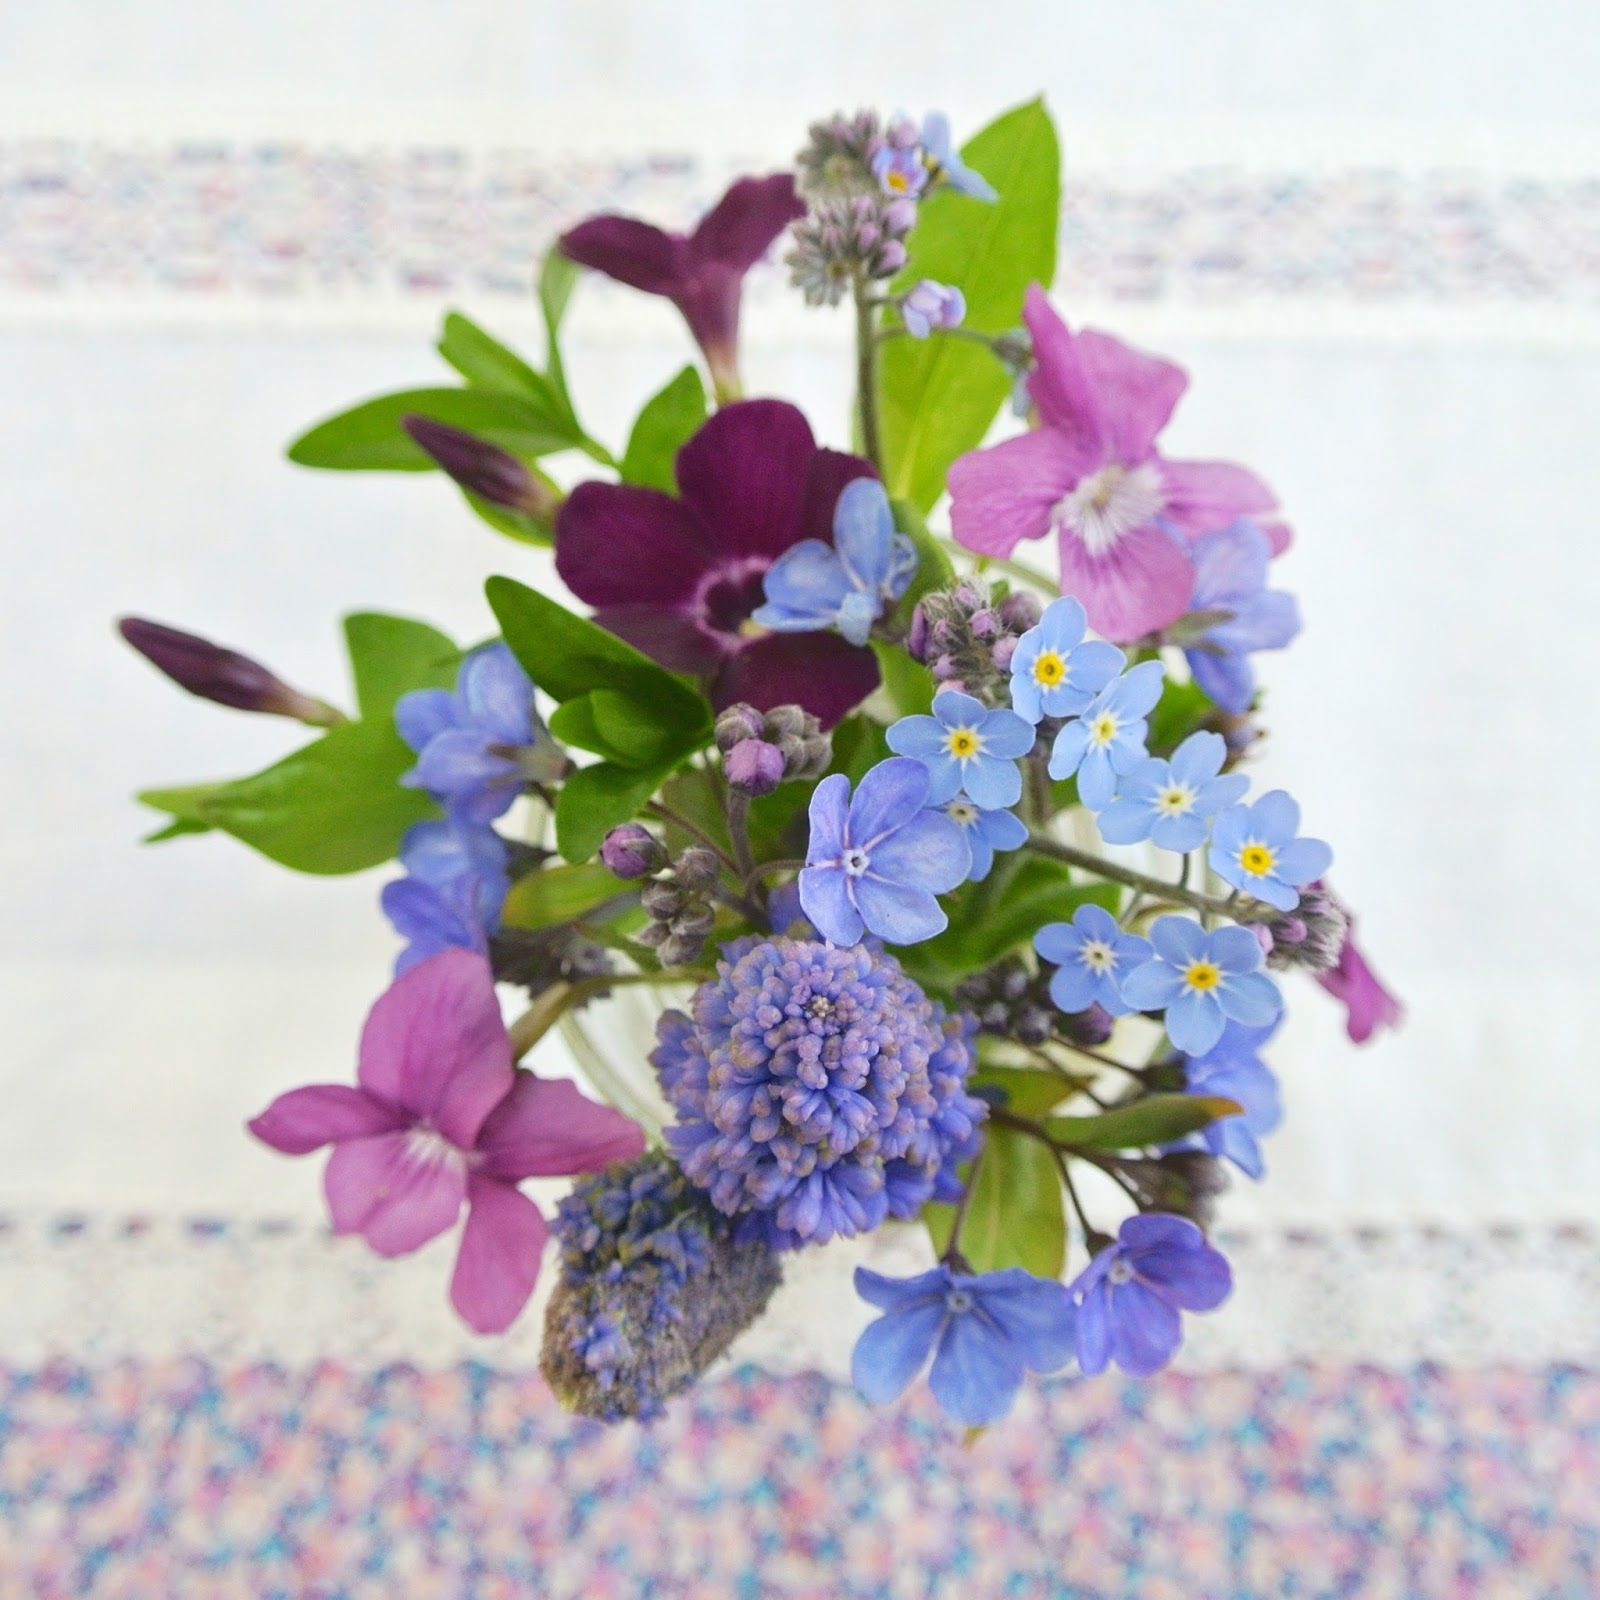 Sew Sweet Violet: Bedside Posy :: April ..... A Round Up Too